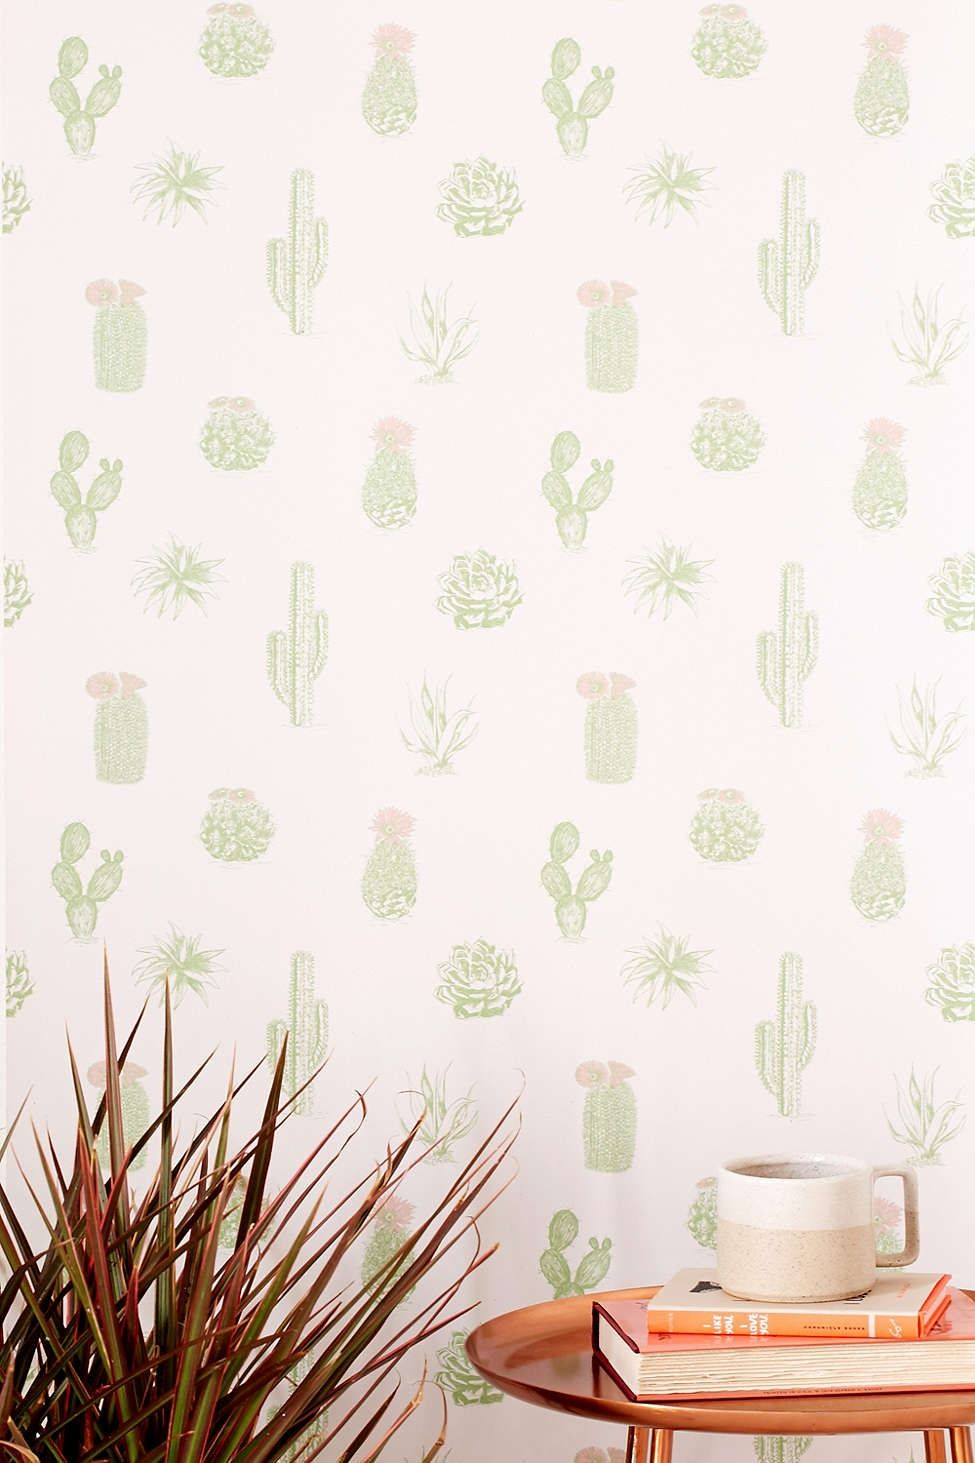 Cactus Icon Removable Wallpaper Funky Home Decor Removable Wallpaper Home Wallpaper